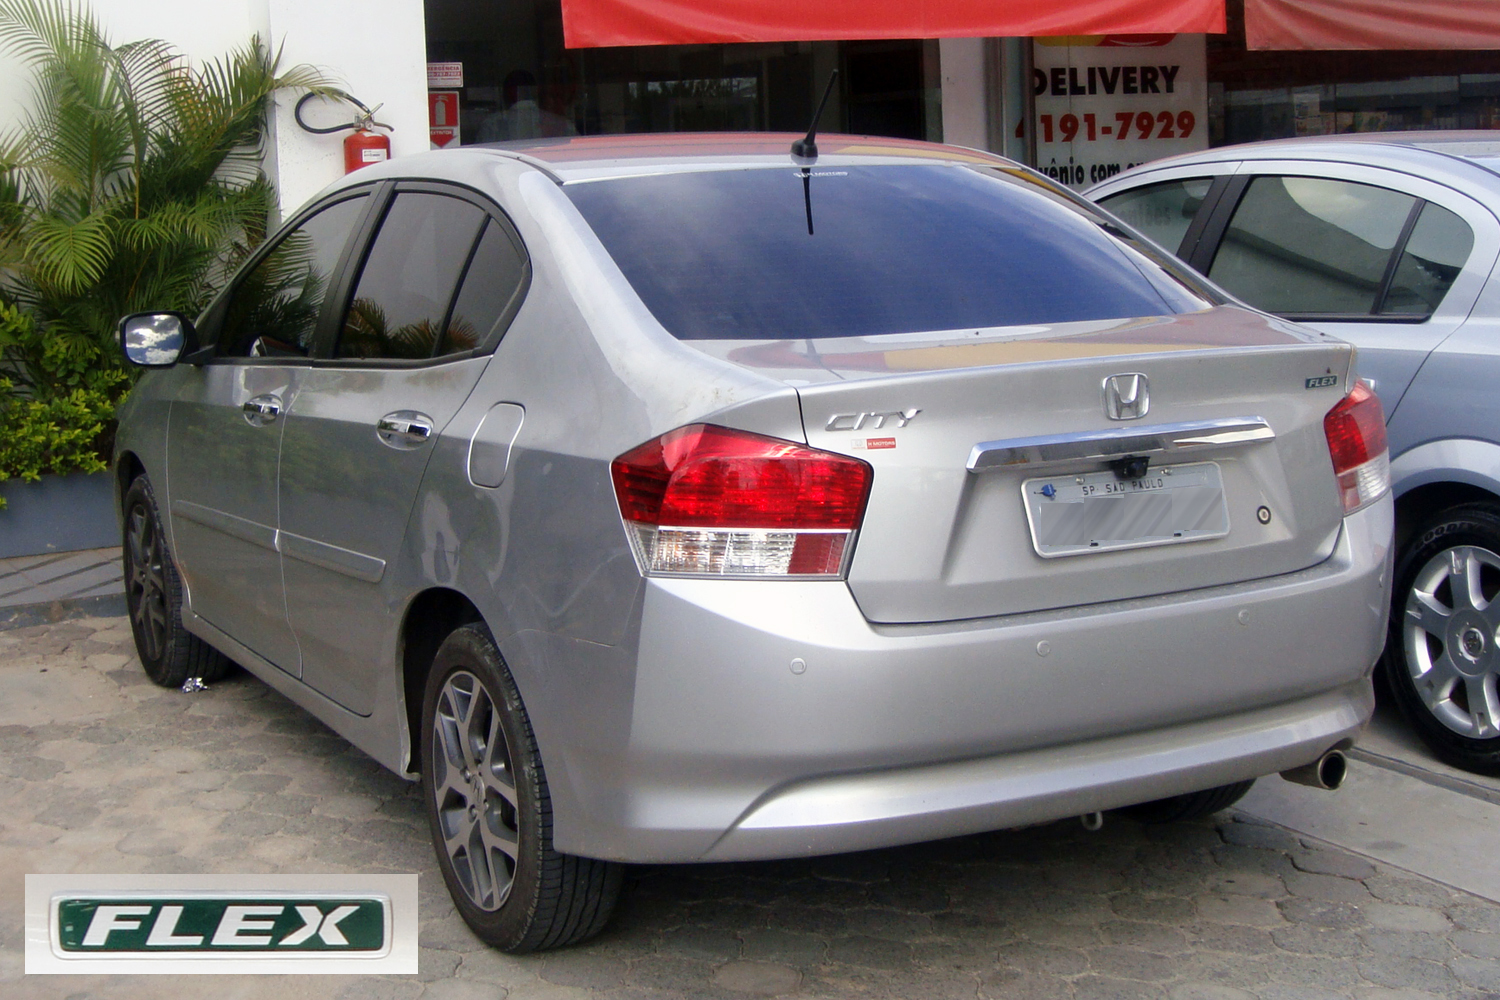 What Is Flex Fuel >> File:Honda City flex fuel with badge SAO 01 2011 806.jpg ...